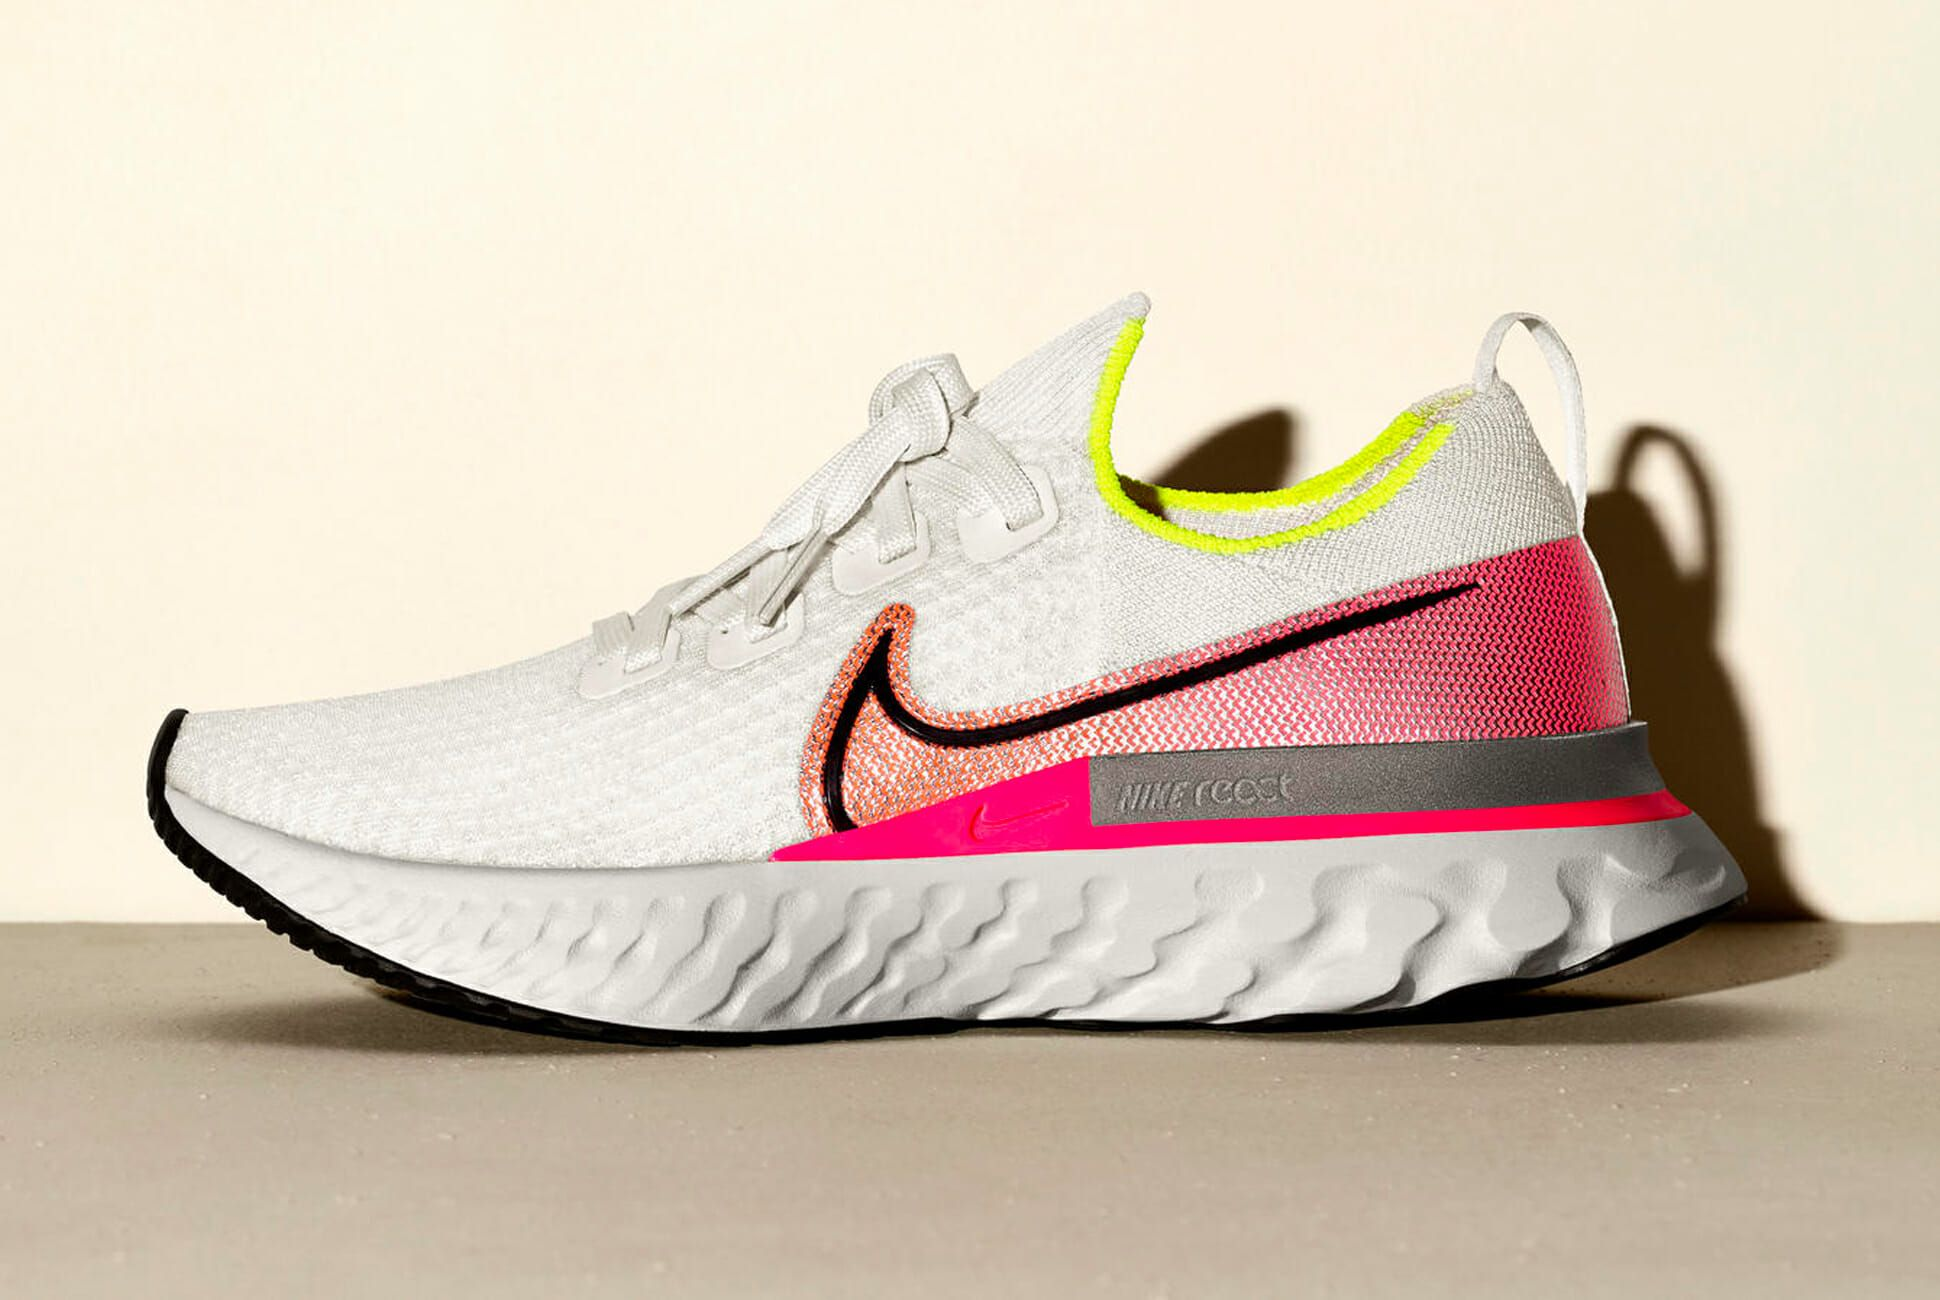 Nike's New Running Shoe Aims to Cut the